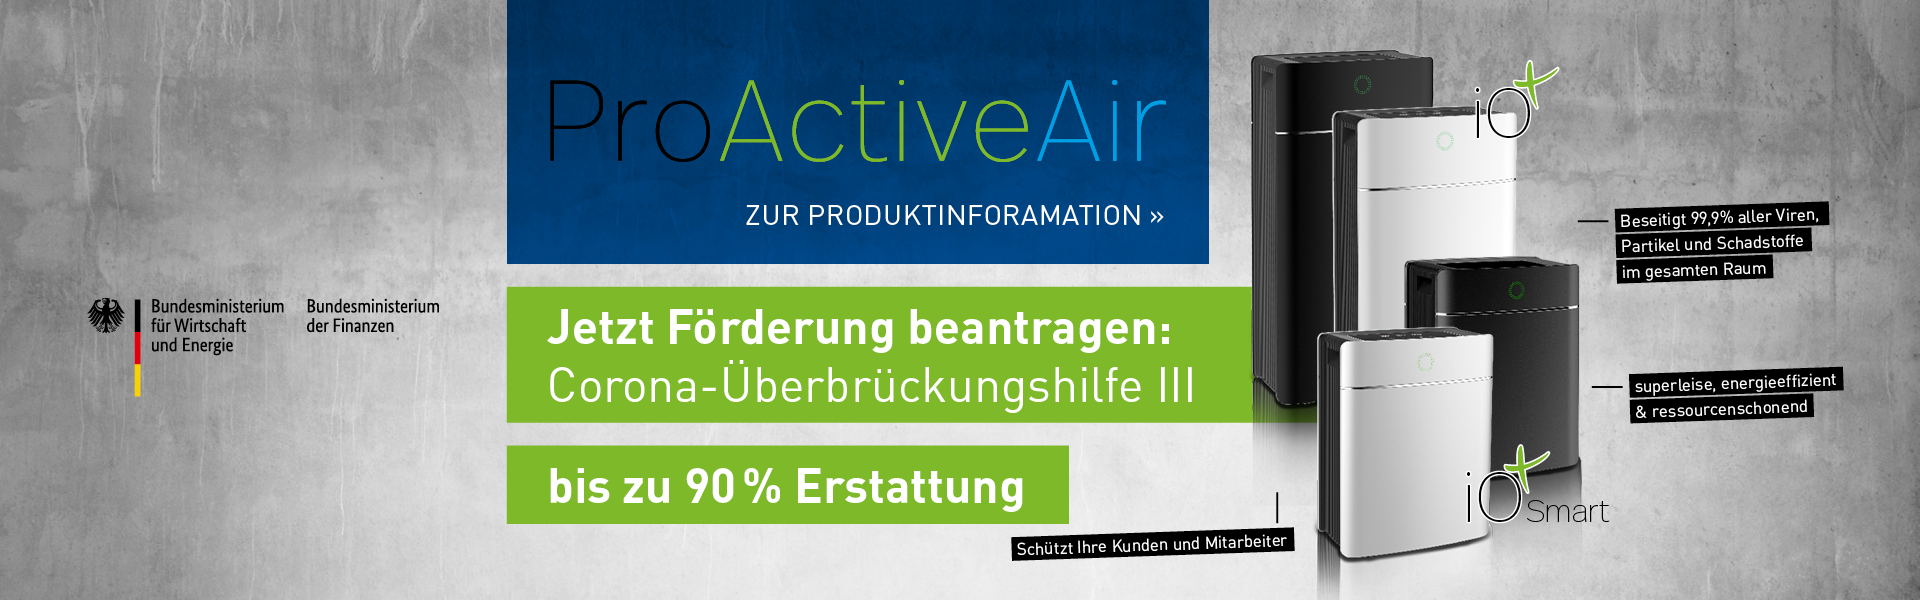 Produktinformation ProActiveAir